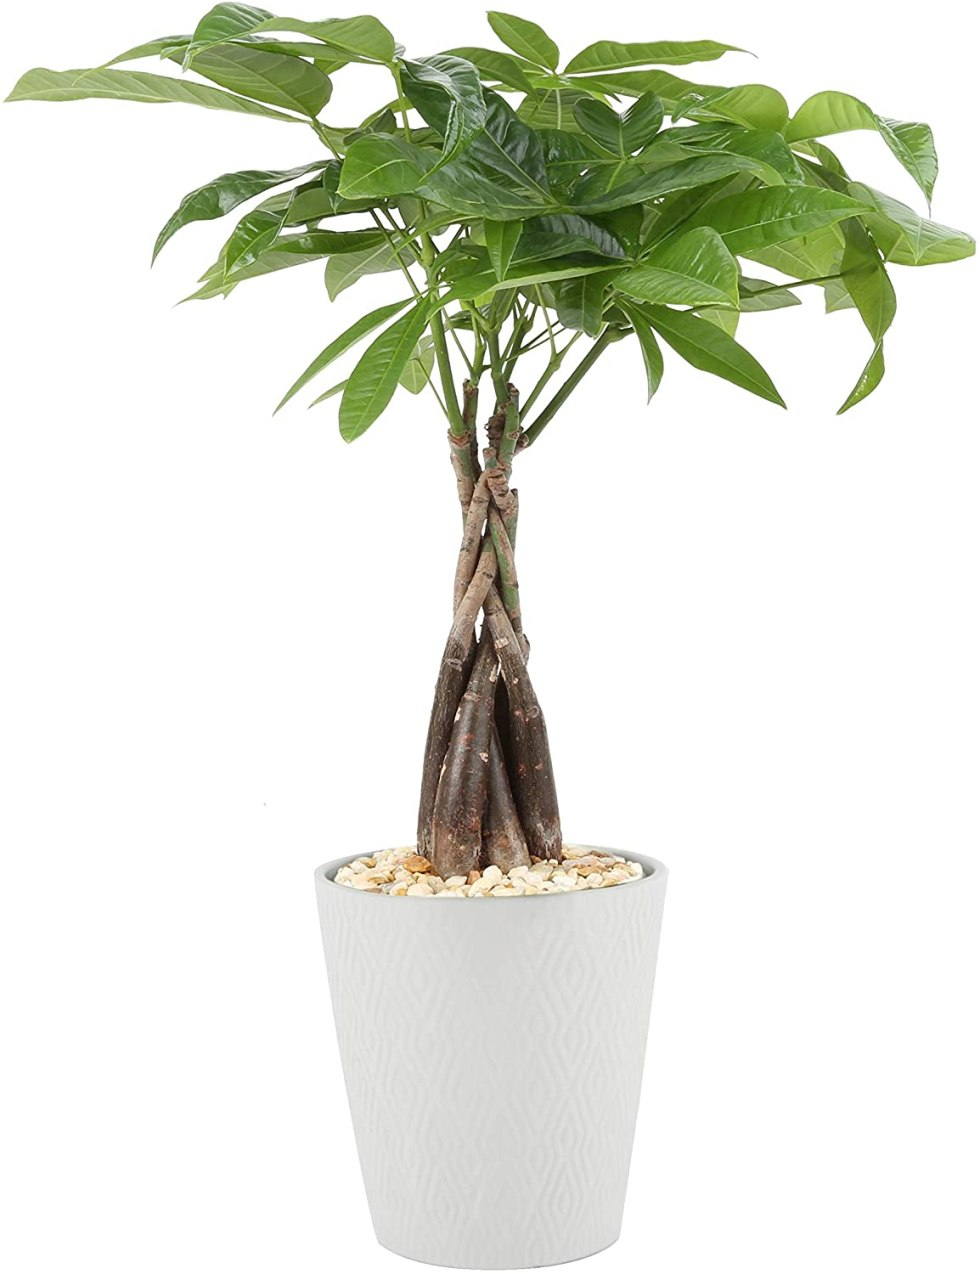 Money Tree plant gifts